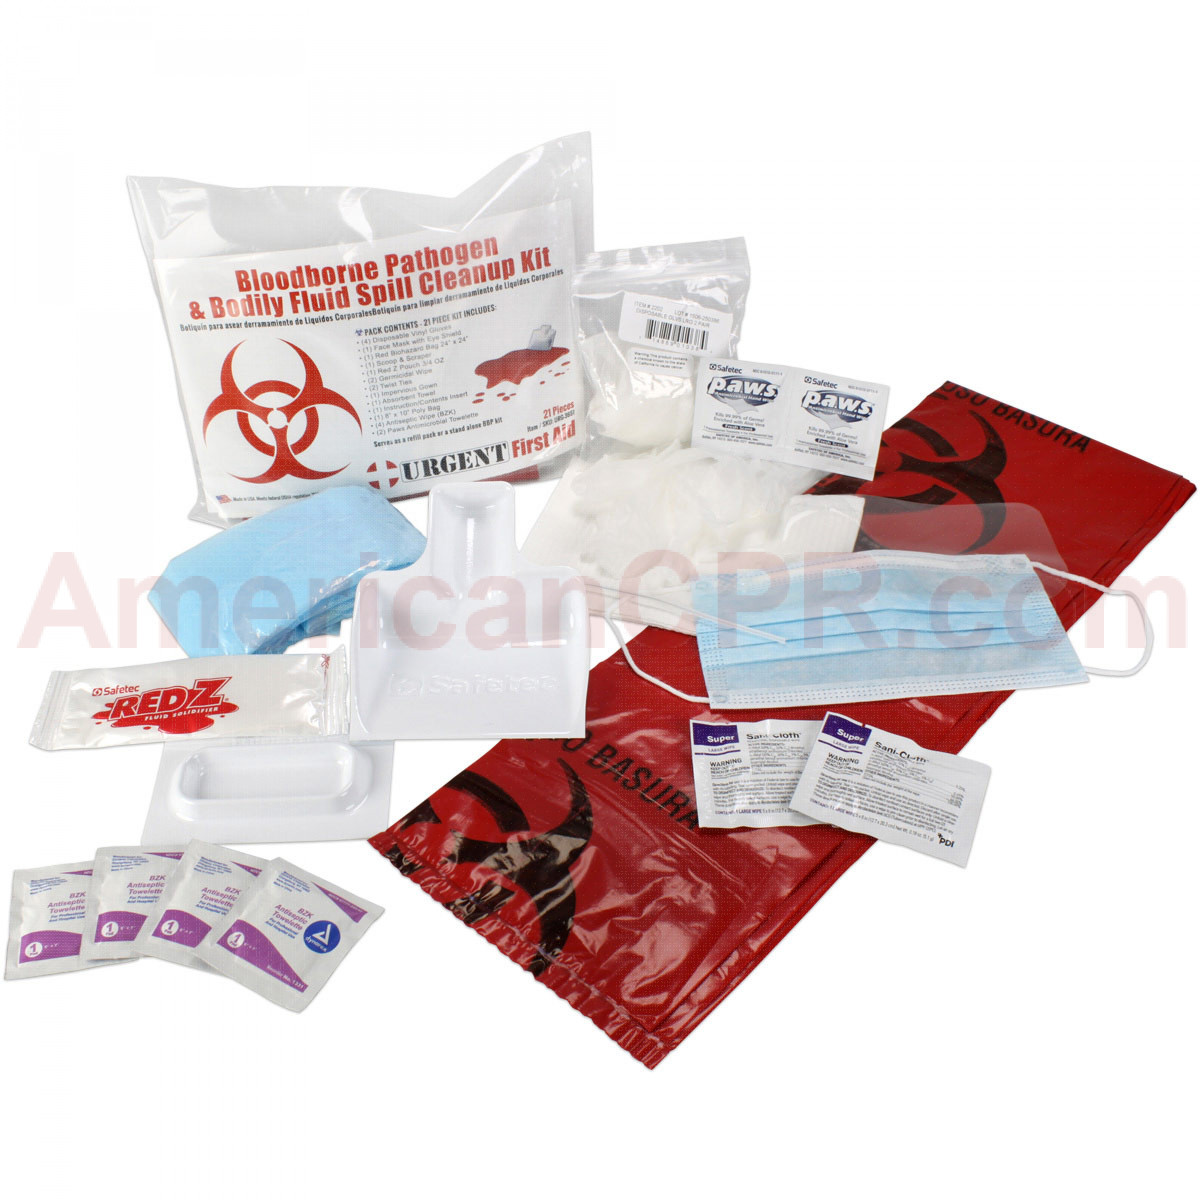 21 Piece Bodily Fluid Clean Up Pack / Bloodborne Pathogen Spill Kit, Urgent First Aid